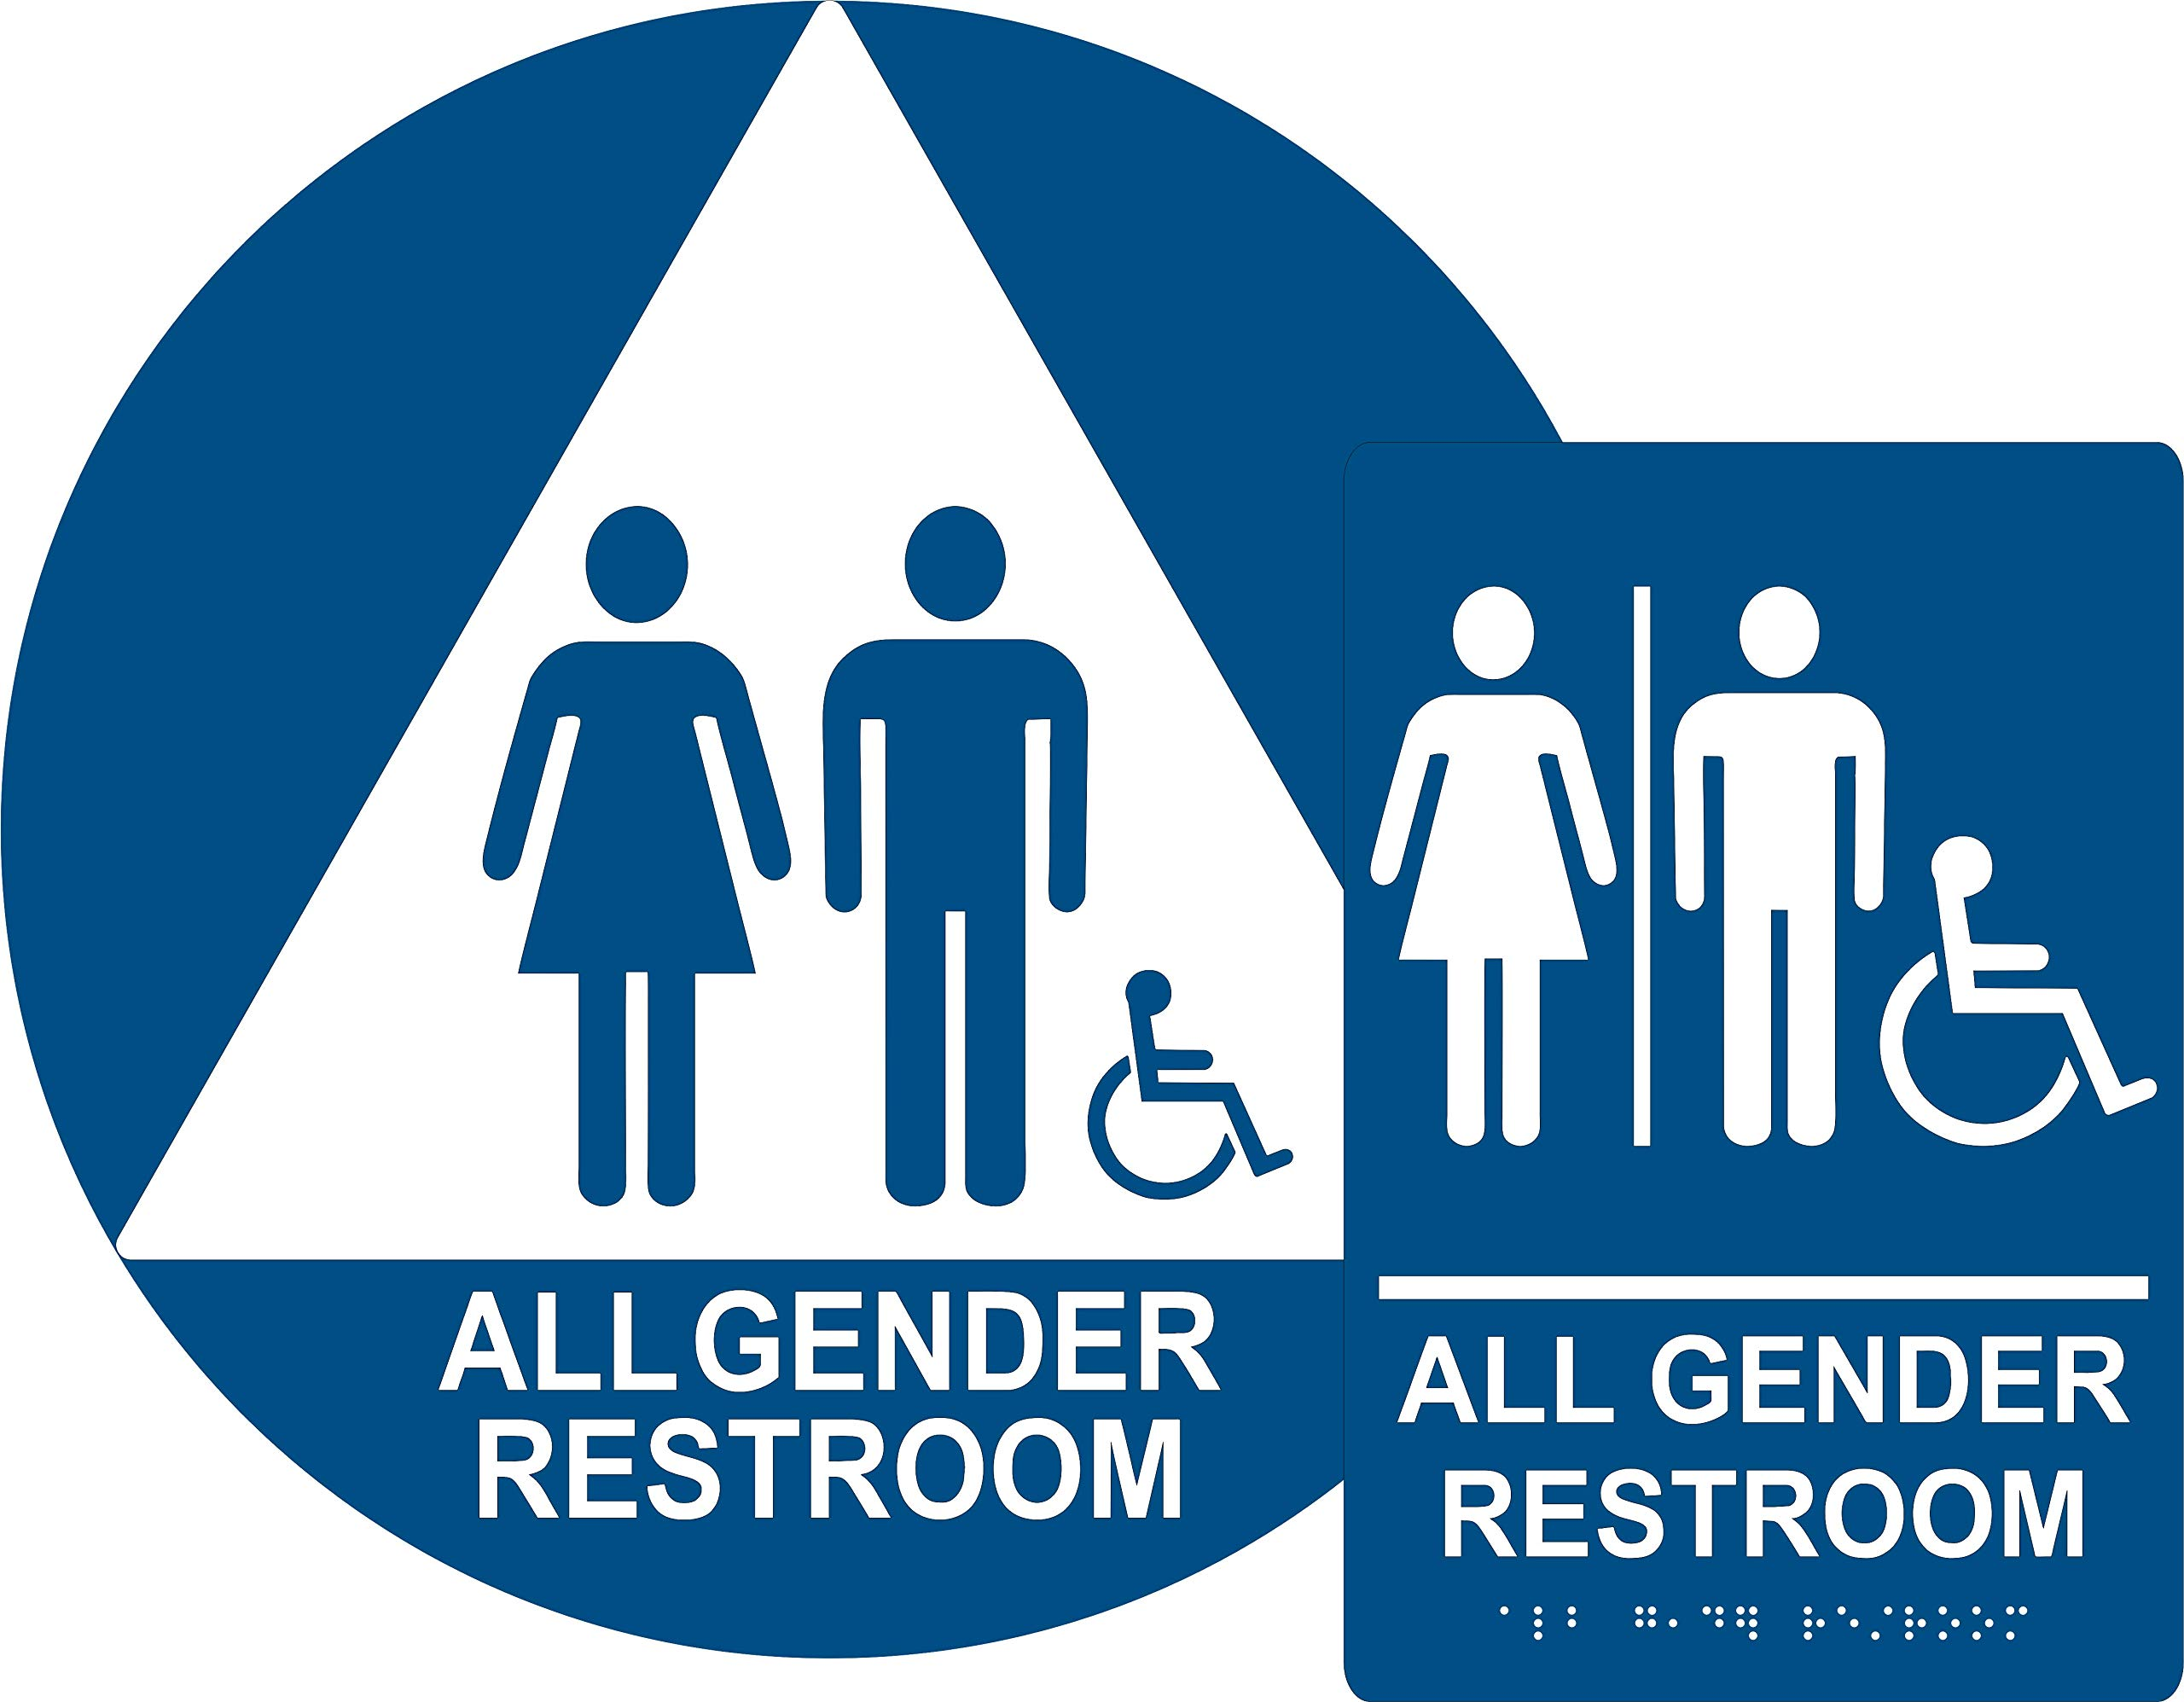 ADA All Gender Restroom Sign Bundle, Door and Wall Sign with Braille